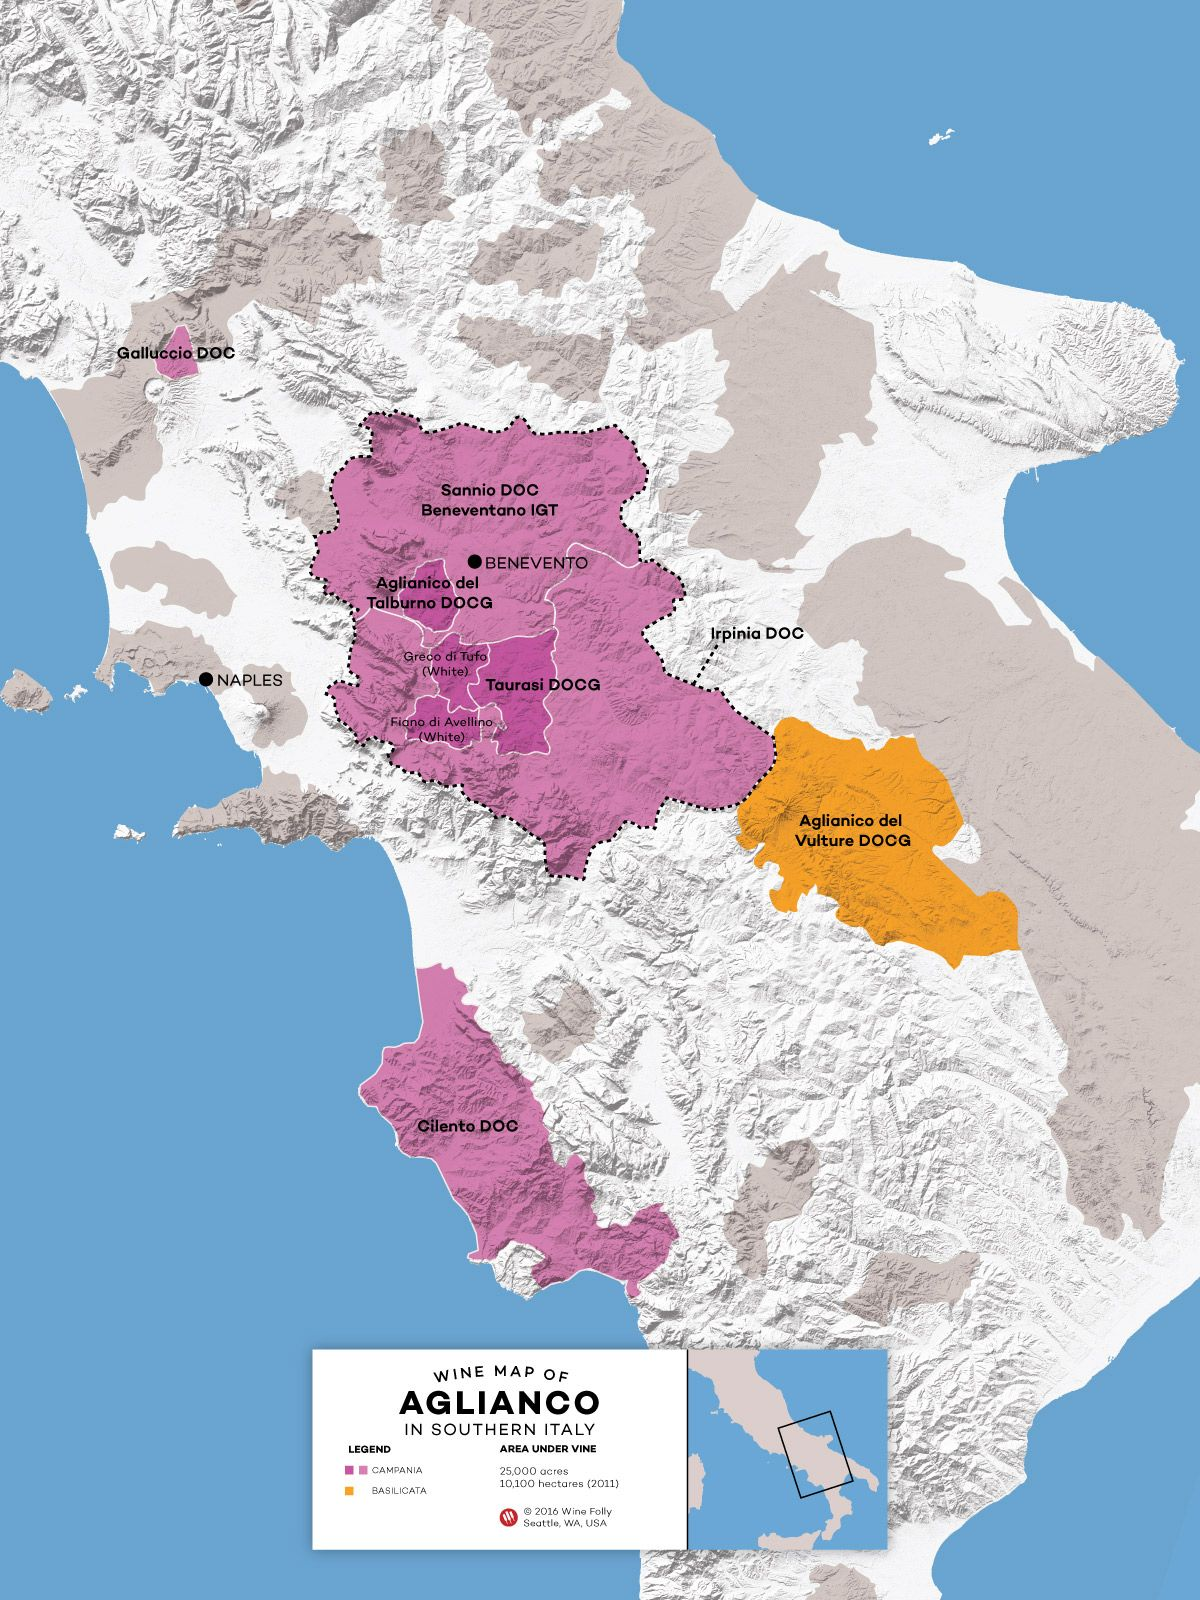 Map Of Southern Italy Regions.All About Aglianico Wine From Taste To Pairing Wine Maps Wine